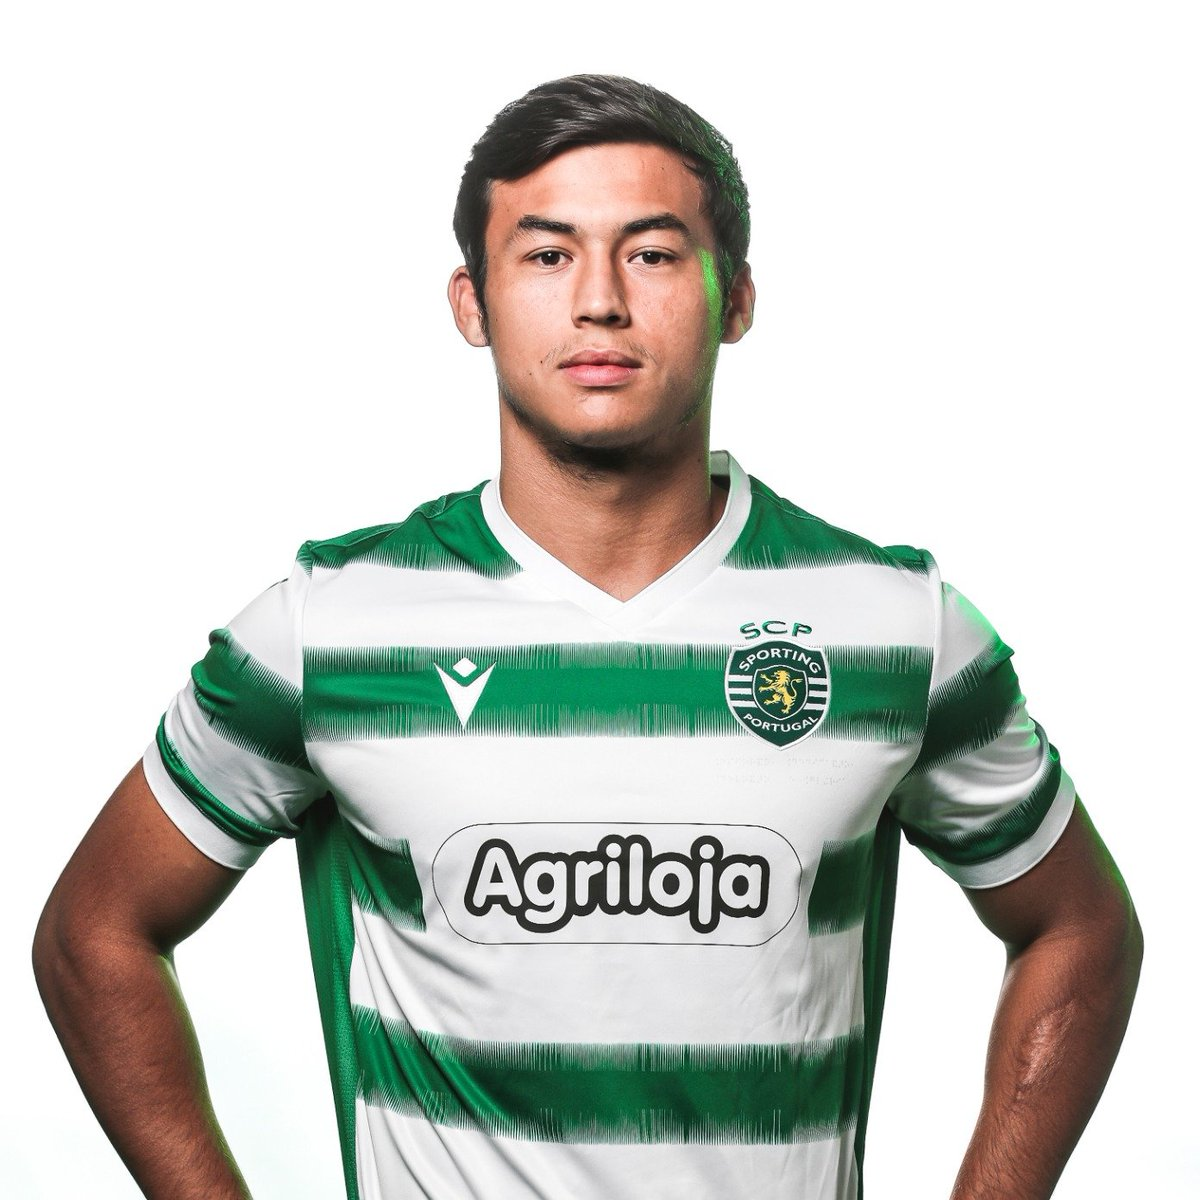 @Sporting_CP's photo on Marco